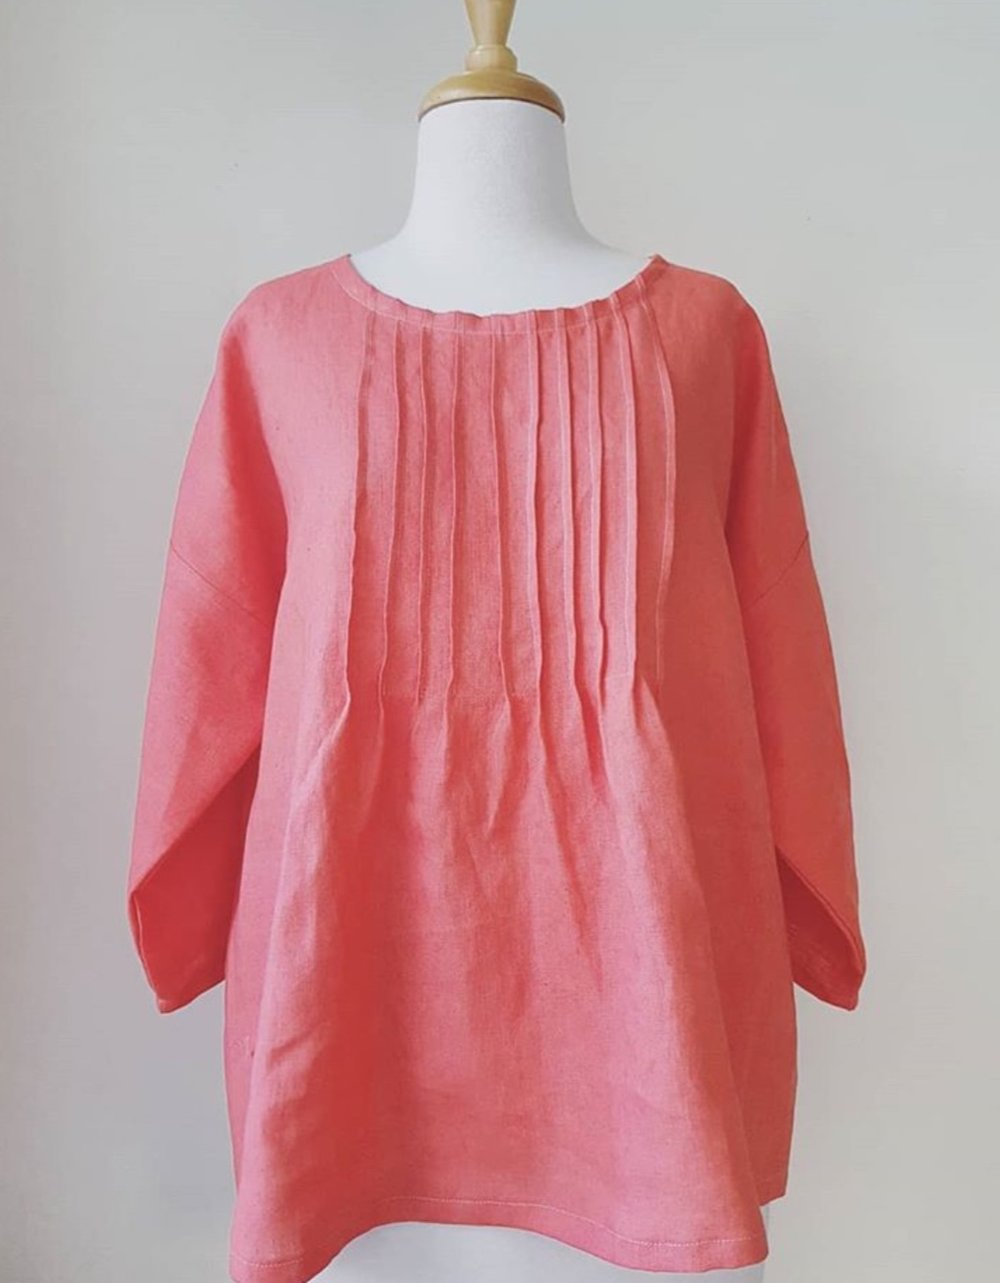 The Friday Shirt in a lovely coral linen